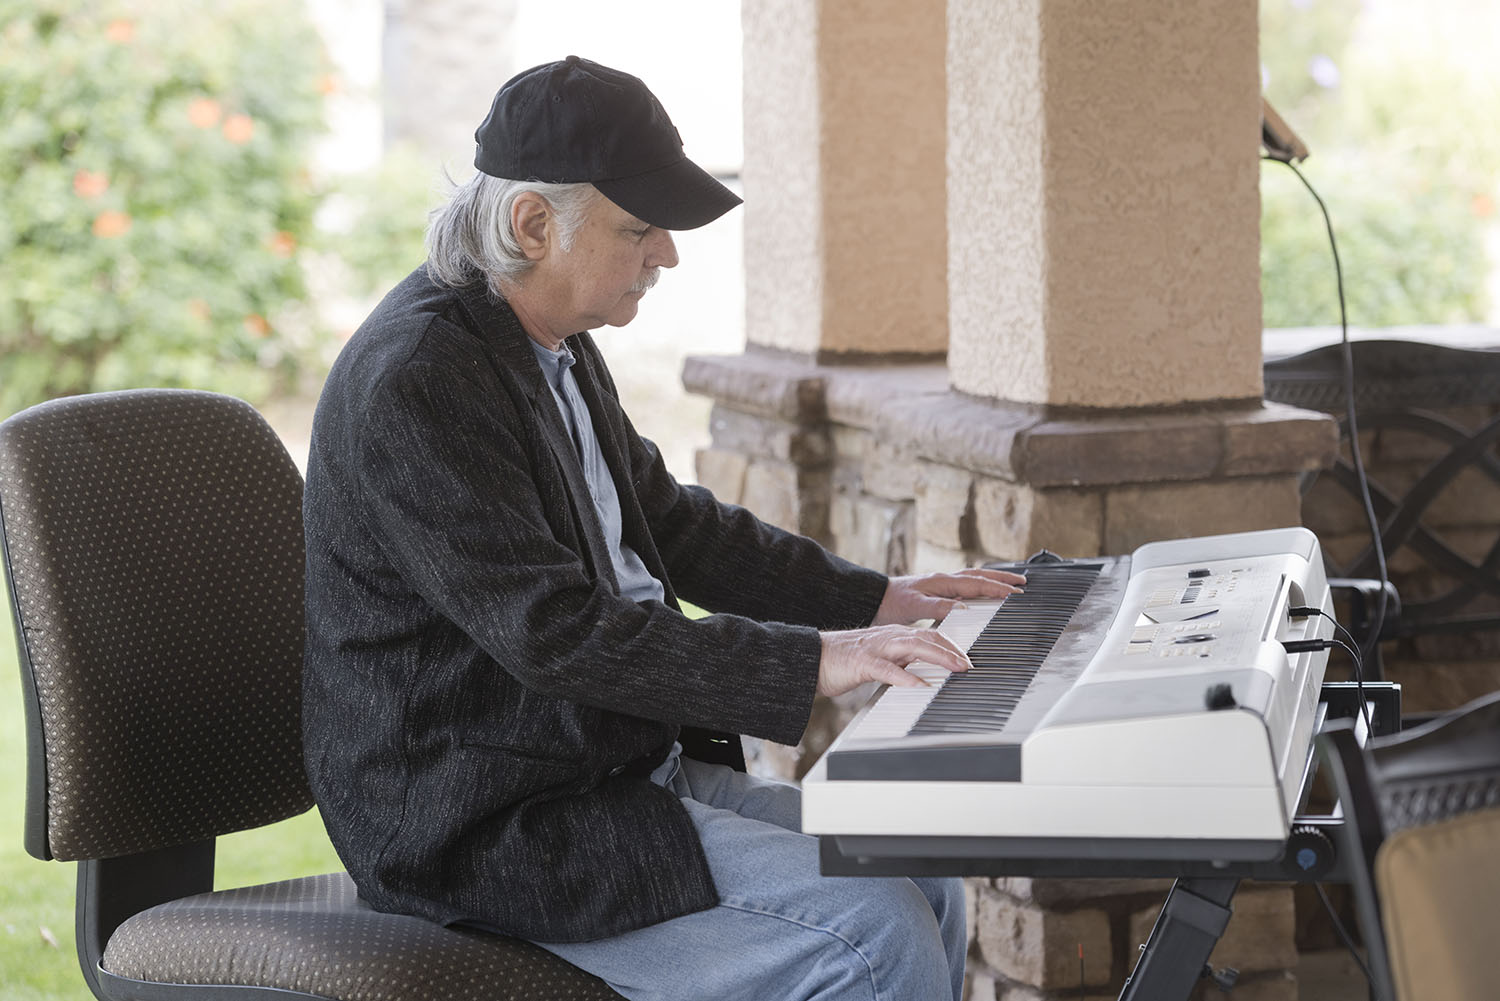 Brian playing the piano